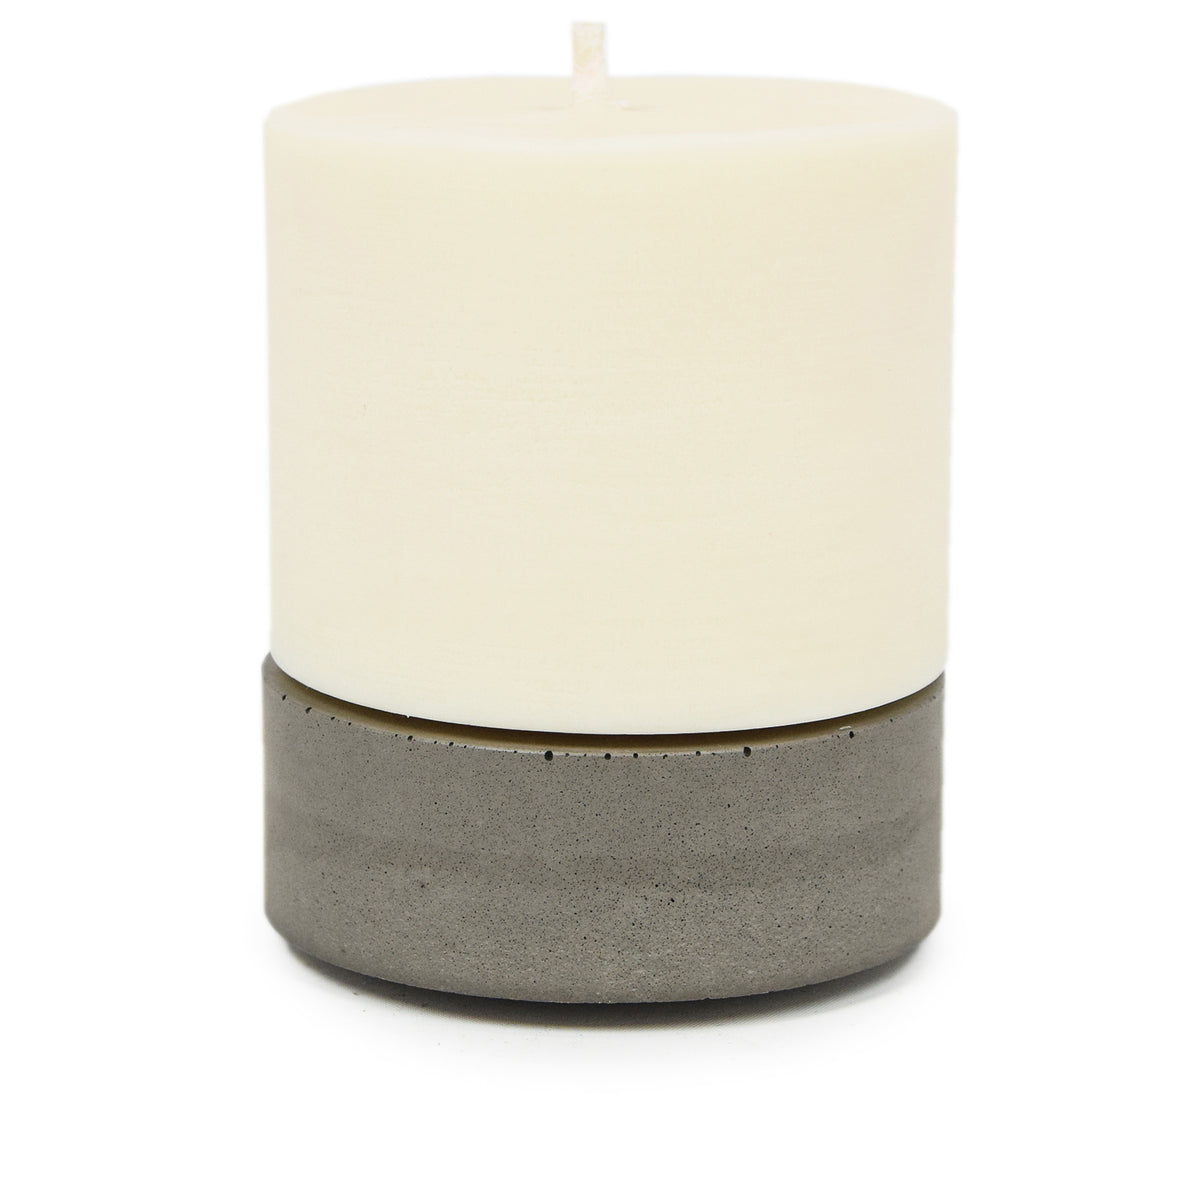 Concrete & Wax Amber Noir Candle And Grey Concrete Holder Large CANDLE